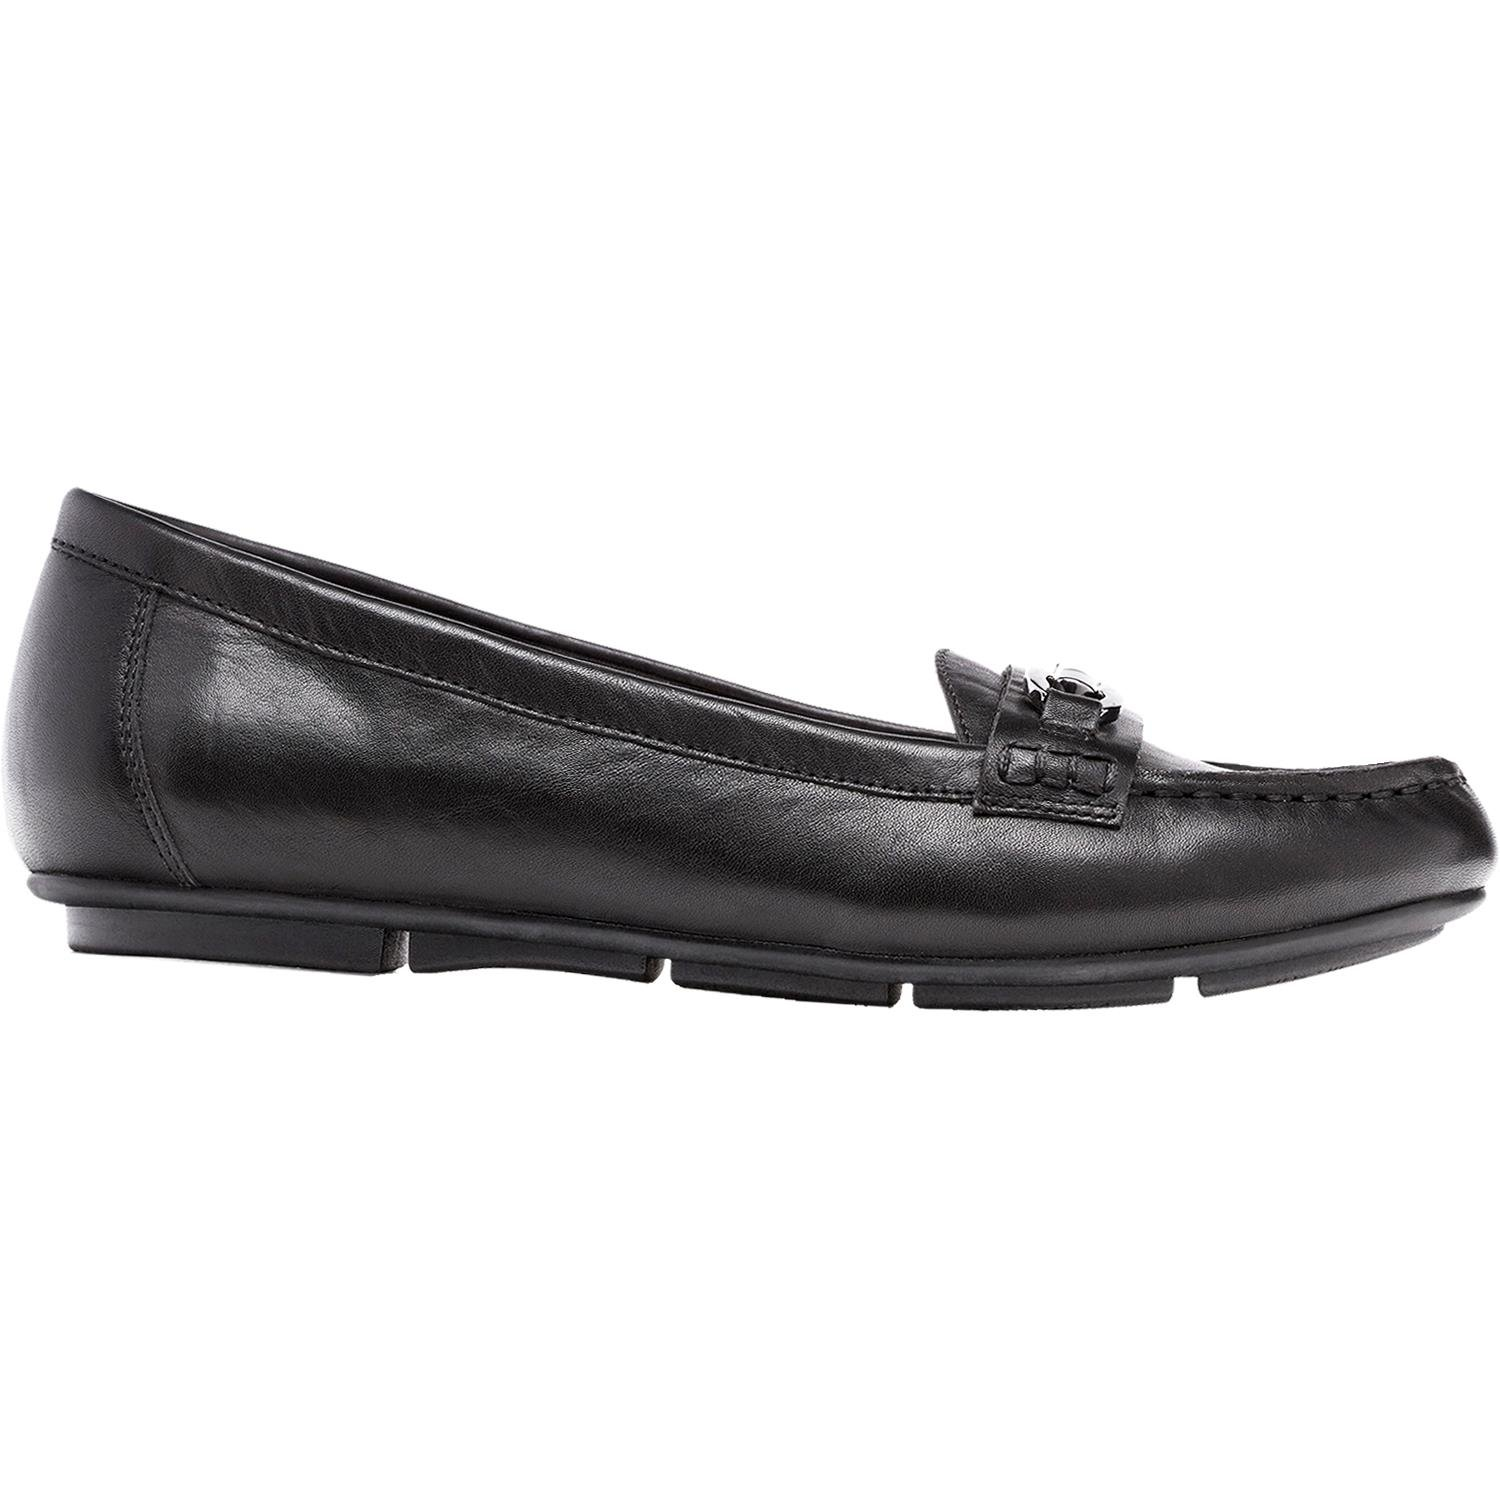 VIONIC Women's Chill Kenya Loafer Black Loafer